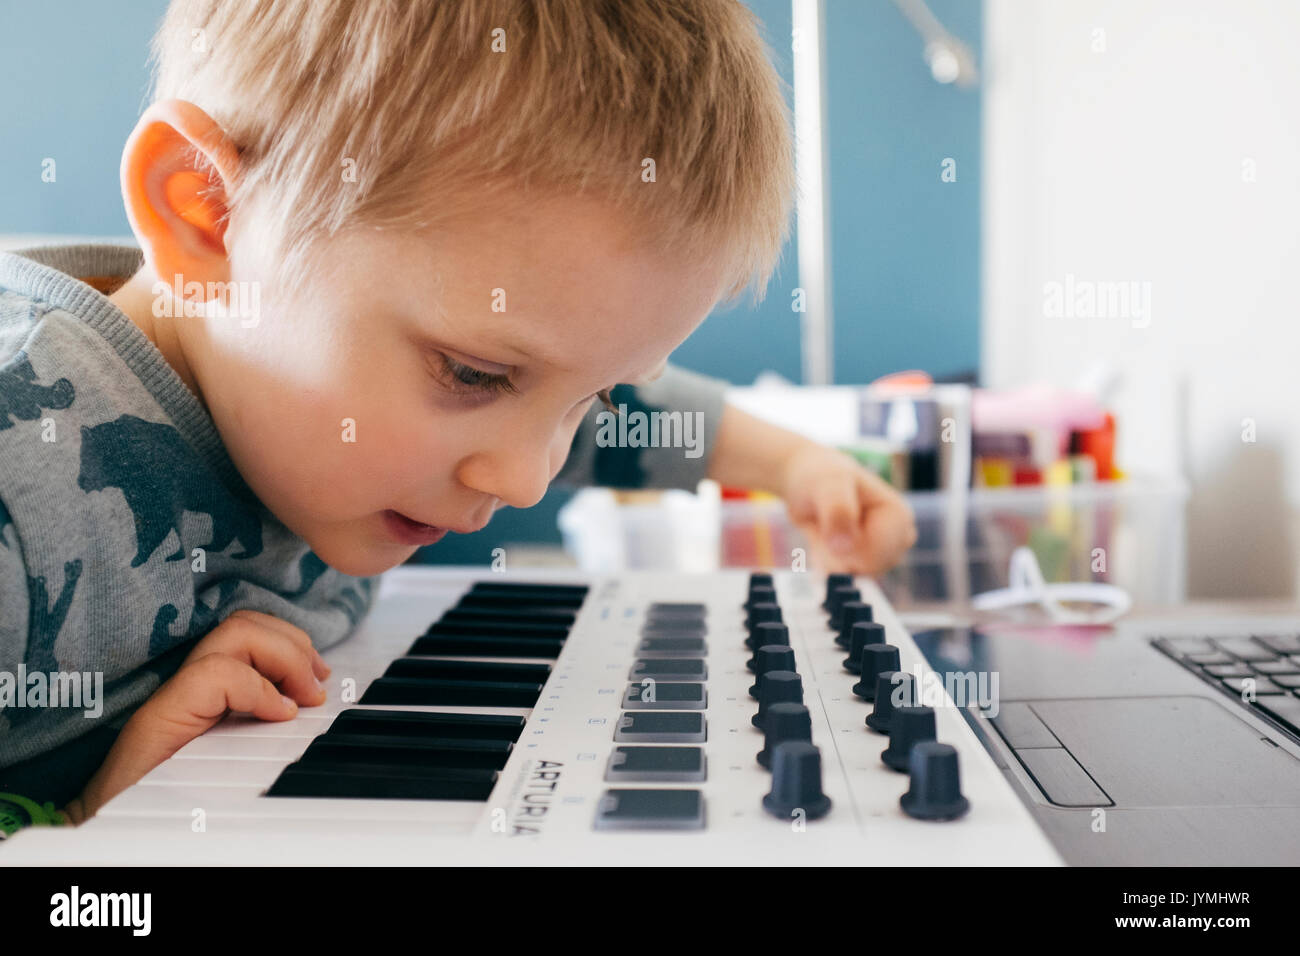 Boy playing with software synthesizer - Stock Image